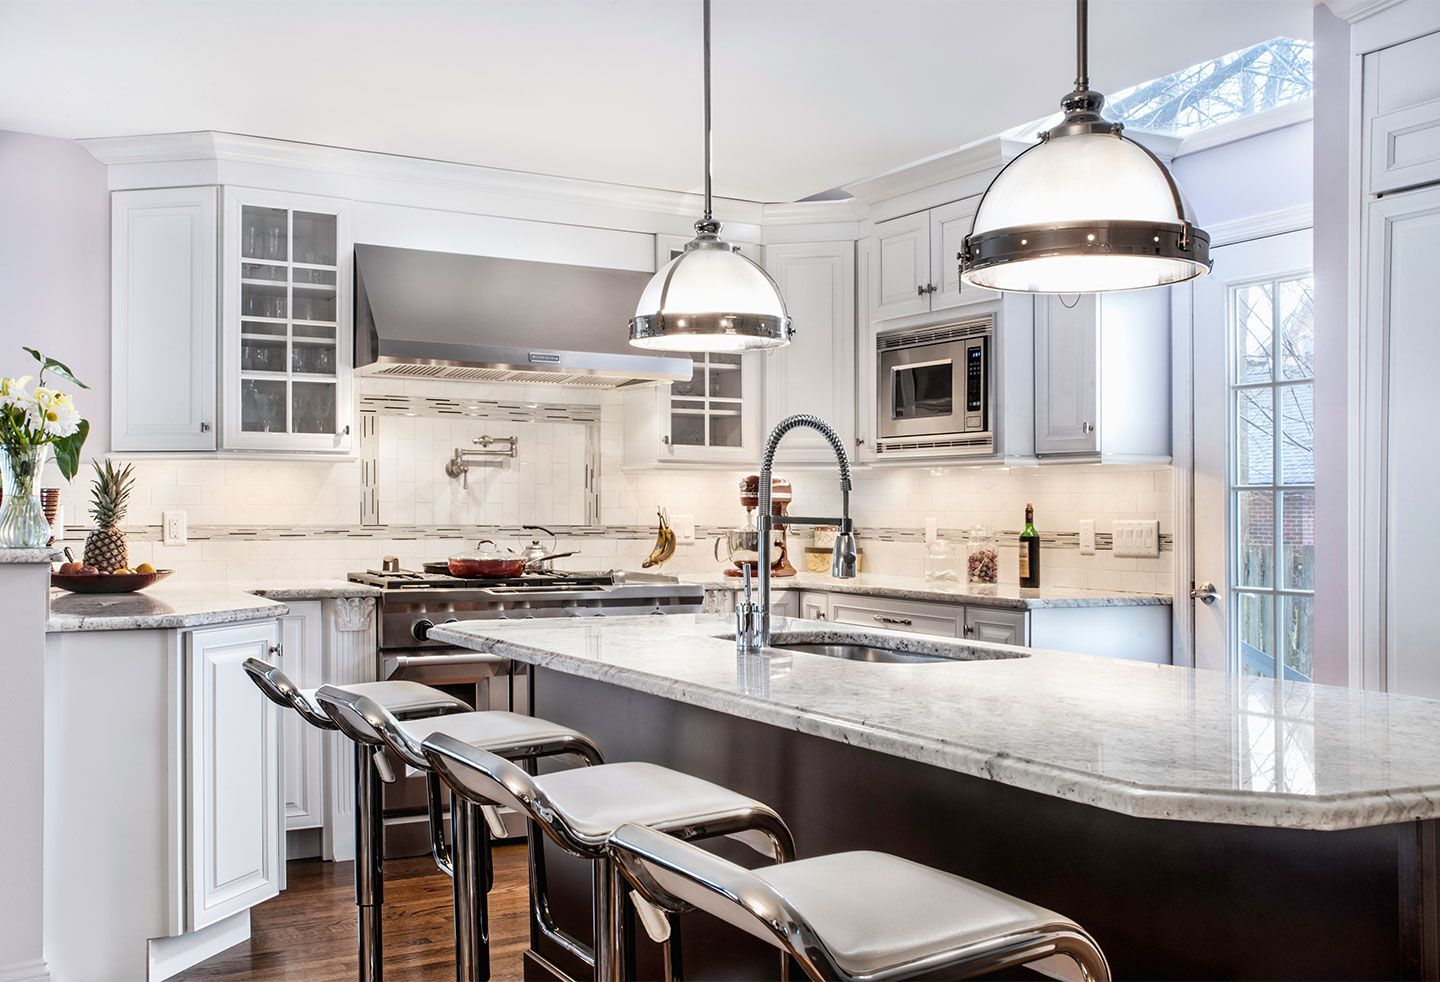 Pleasing Kitchen Granite Counters Slide Image Largest Selection Ago How To Install Granite Counters On Concrete How To Install Granite Counters On New Cabinets houzz 01 How To Install Granite Countertops